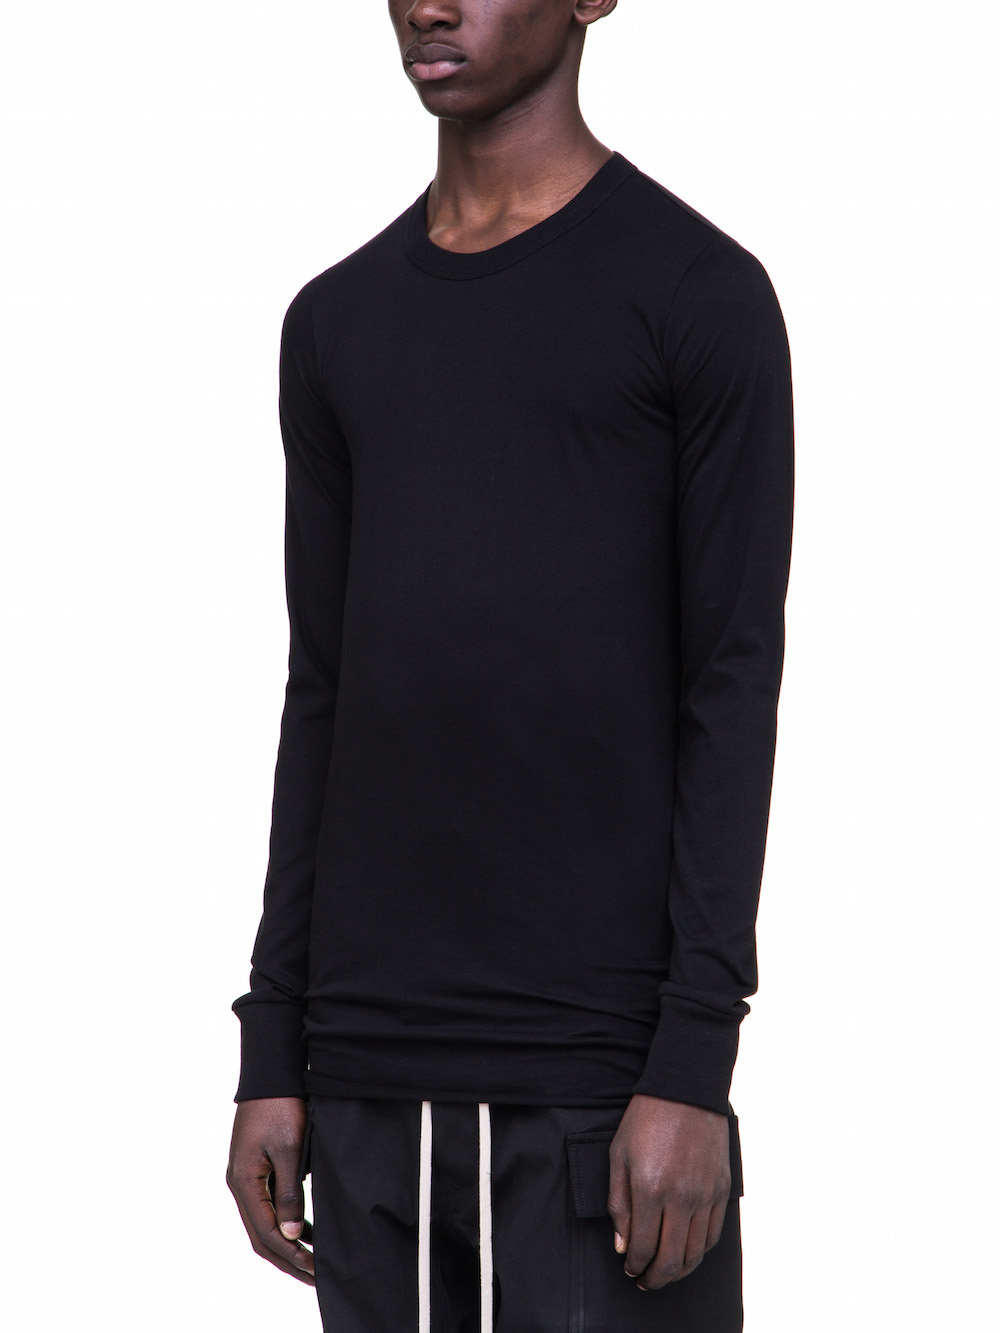 RICK OWENS BASIC LONG SLEEVES IN BLACK COTTON